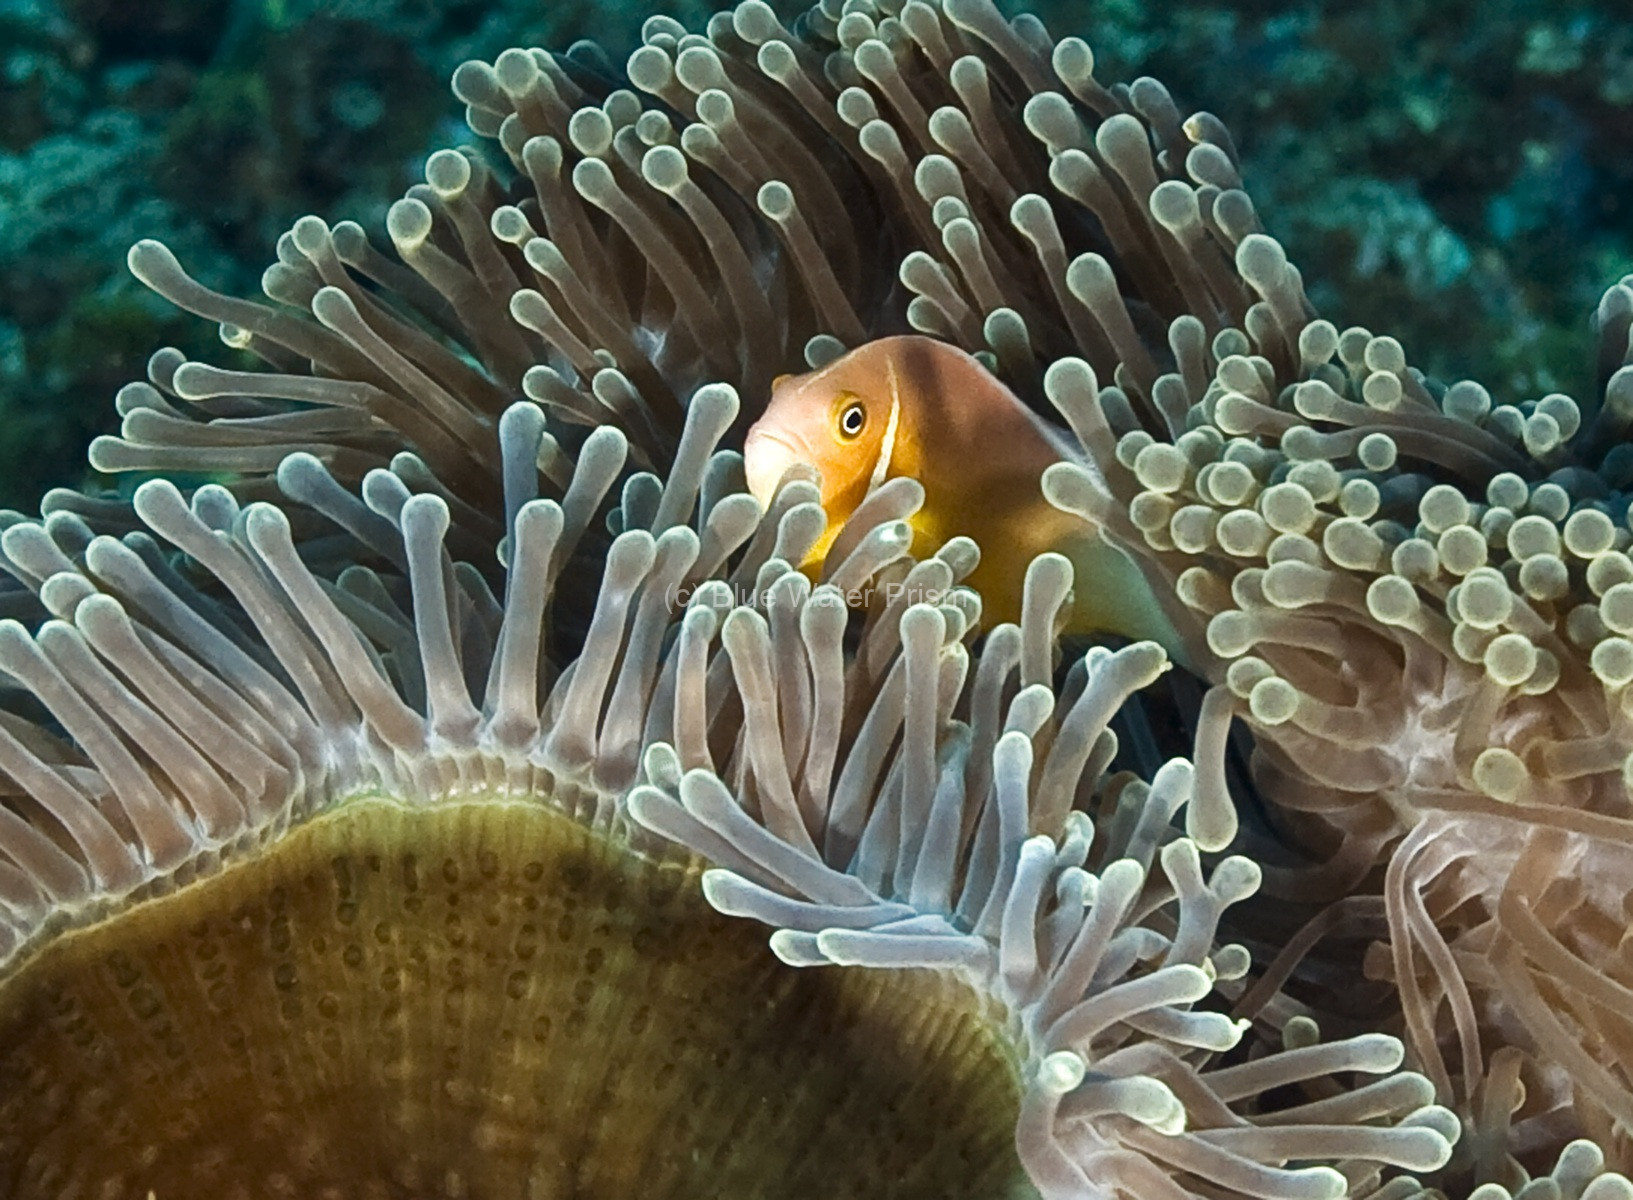 Anemonefish hiding in anemone on Fiji